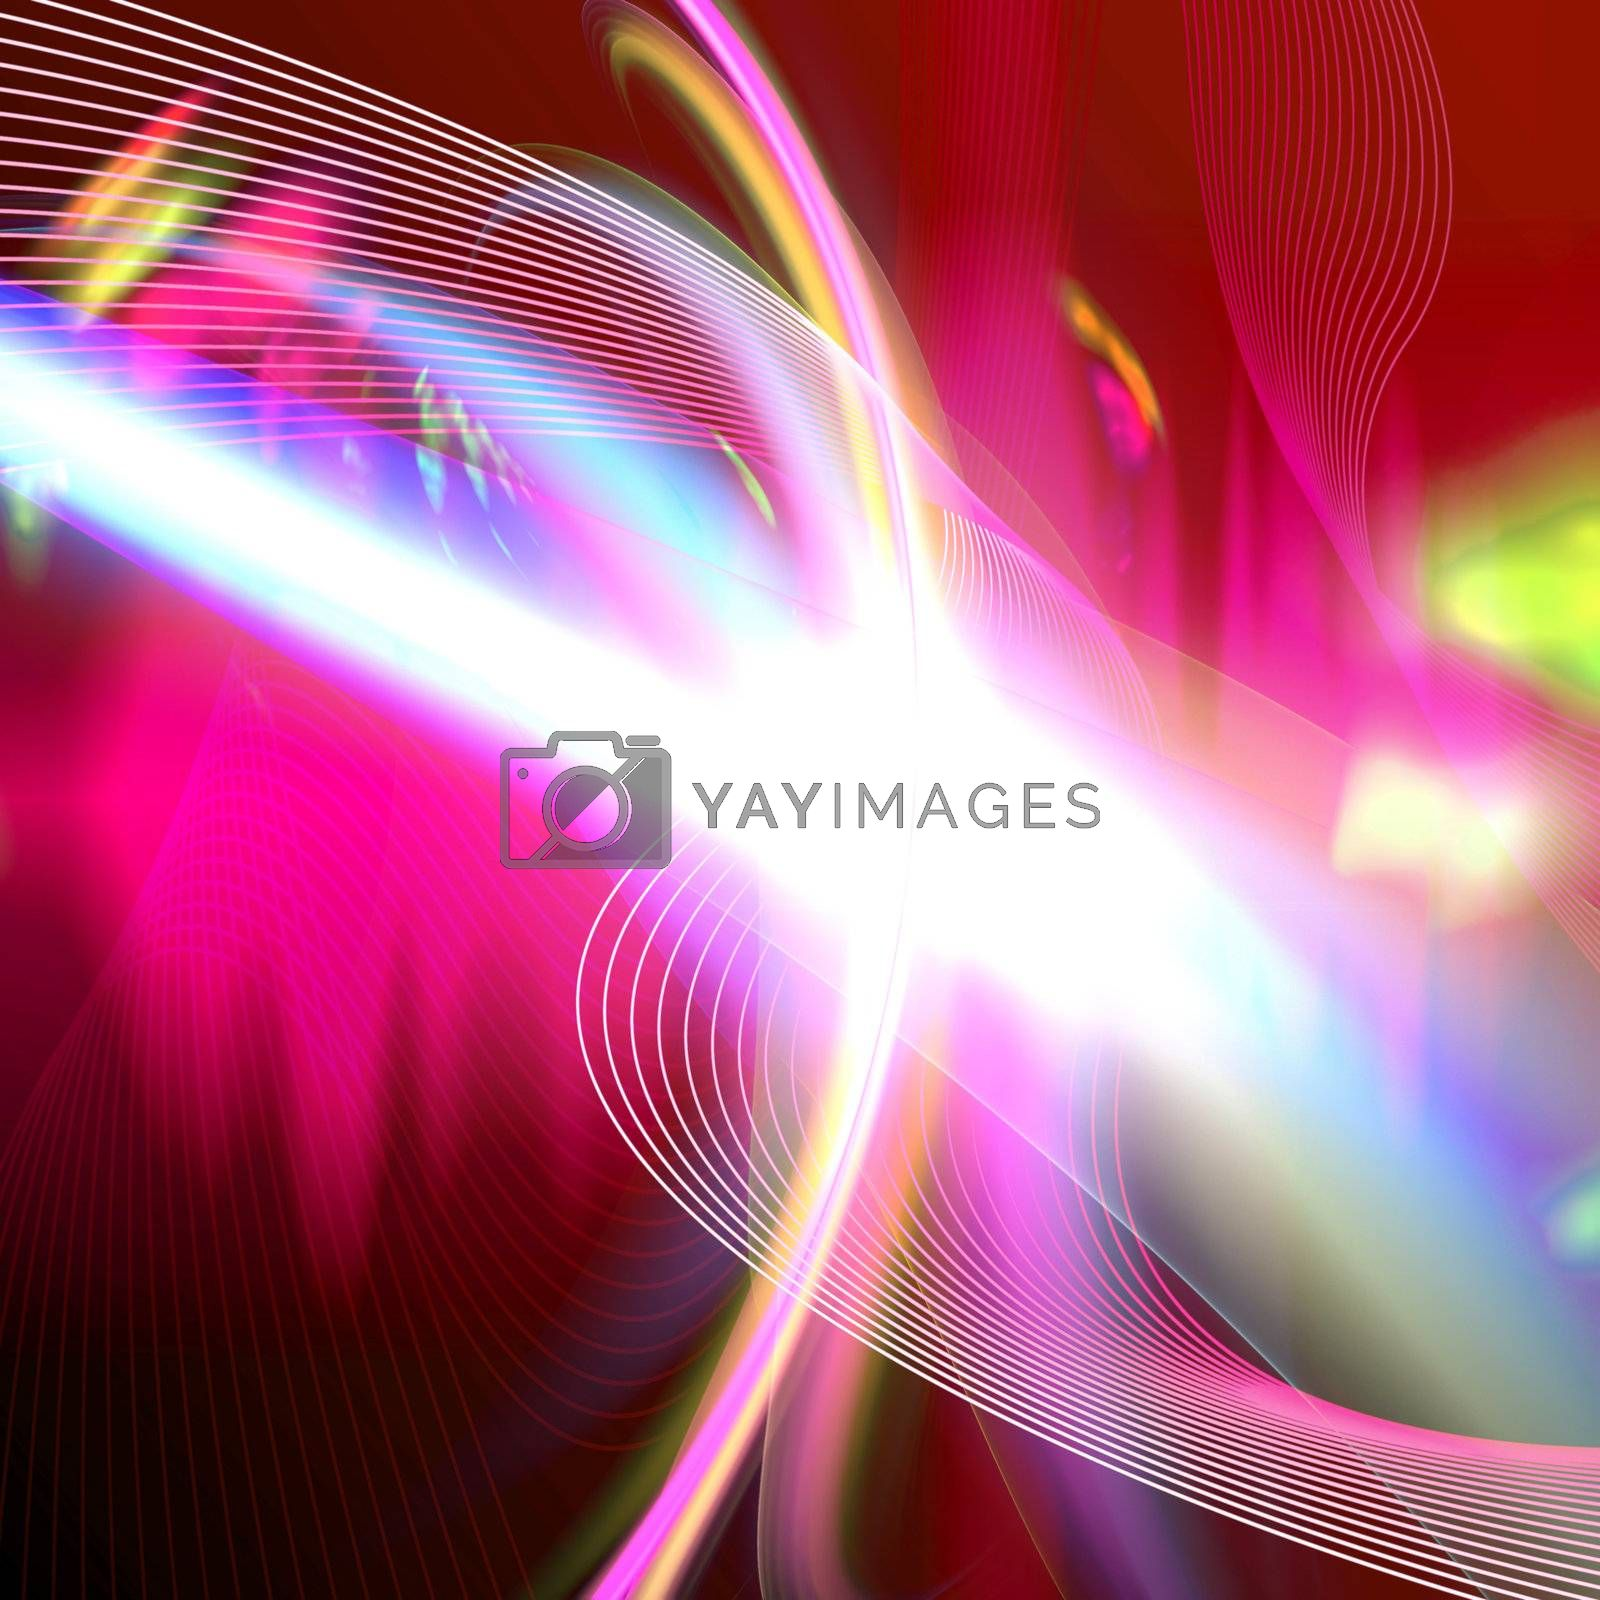 Abstract glowing fractal flare design that works great as a background or backdrop.